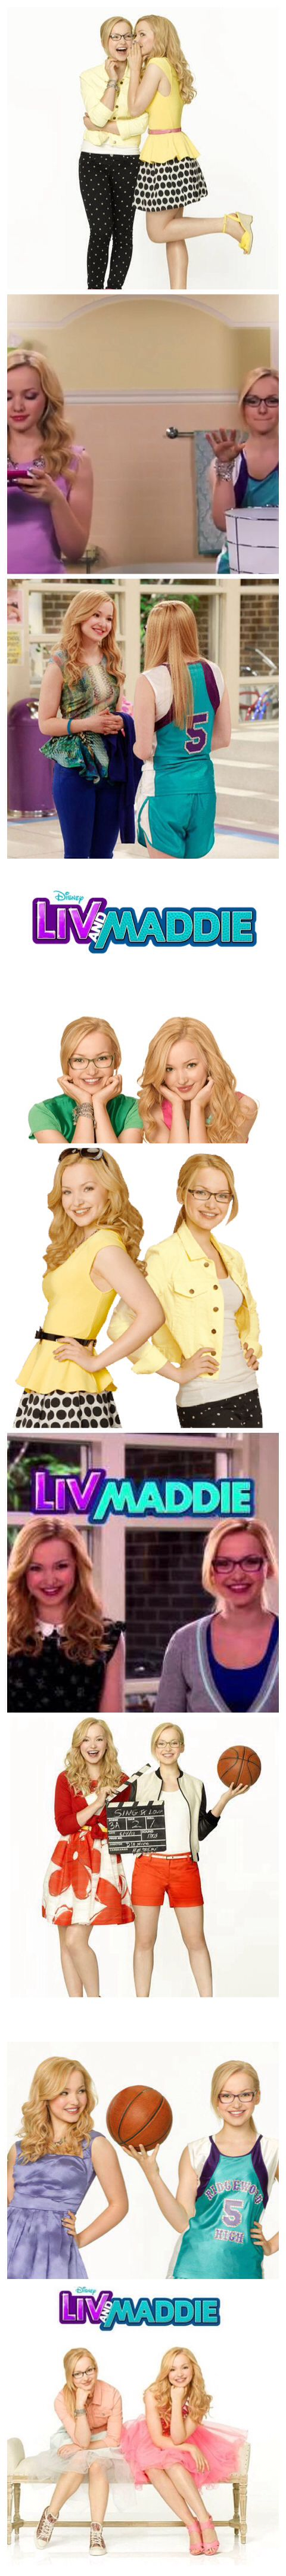 Printable coloring pages liv and maddie - Liv And Maddie Photo Strip